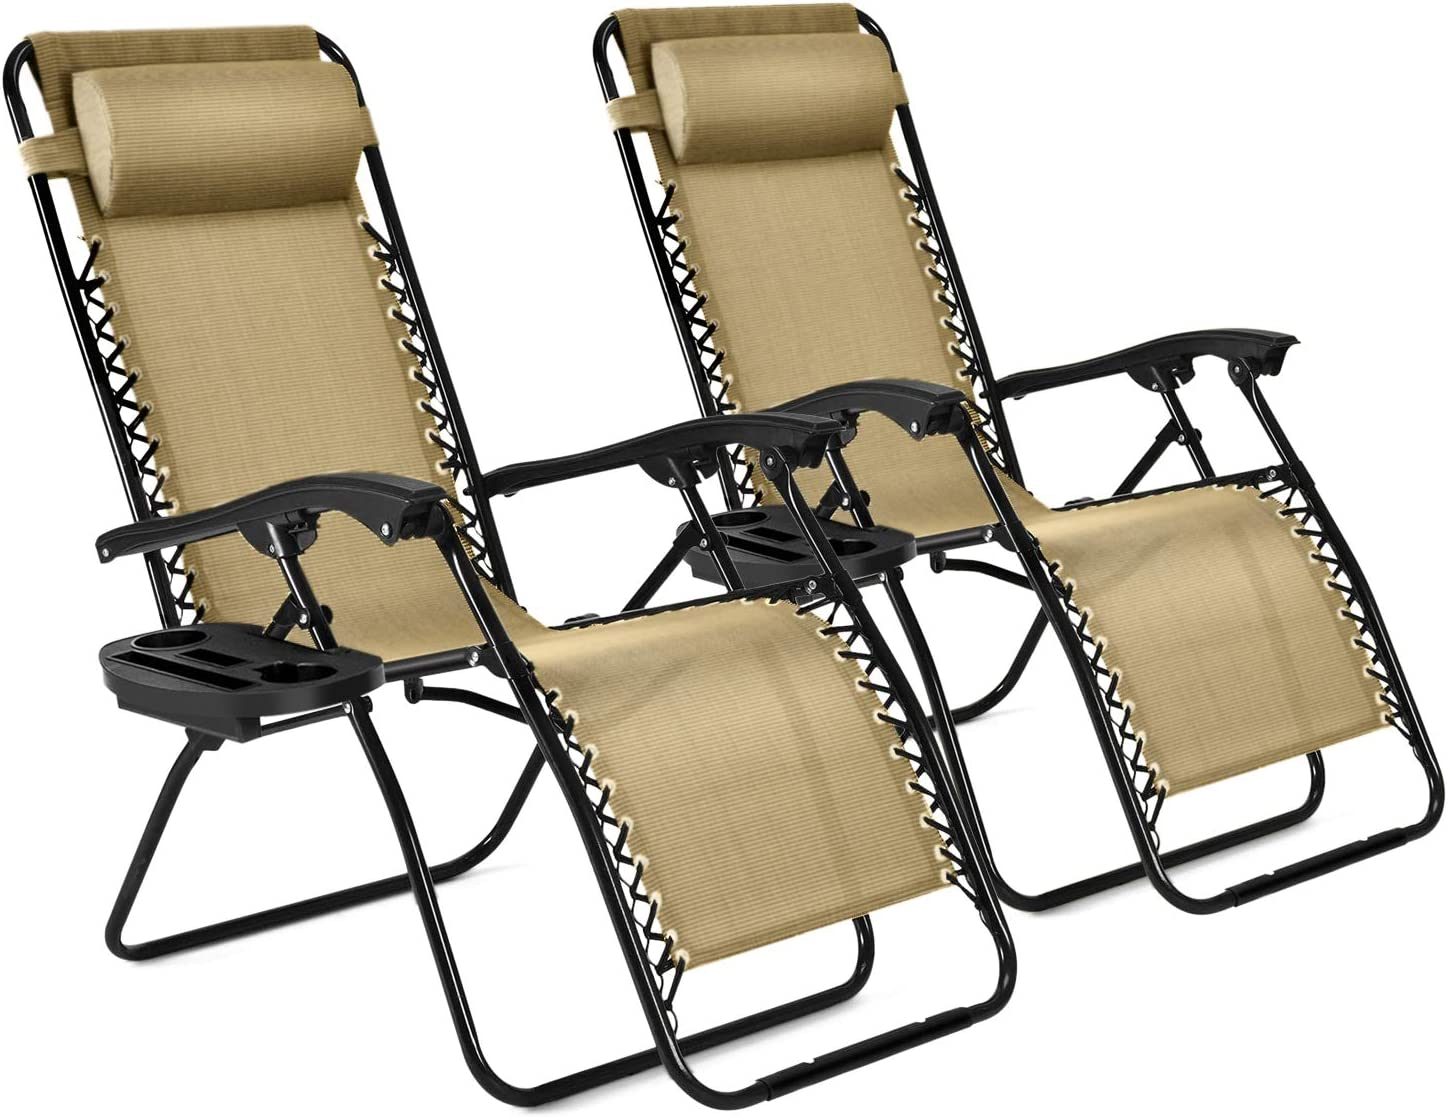 Flexzion Zero Gravity Patio Lounge Chairs Recliners Set of 2 Pack (Beige) Reclining Folding Chaise Sun Loungers with Removable Padded Pillow Headrest & Cup Holder Tray, Max Weight 265 Lbs for Outdoor